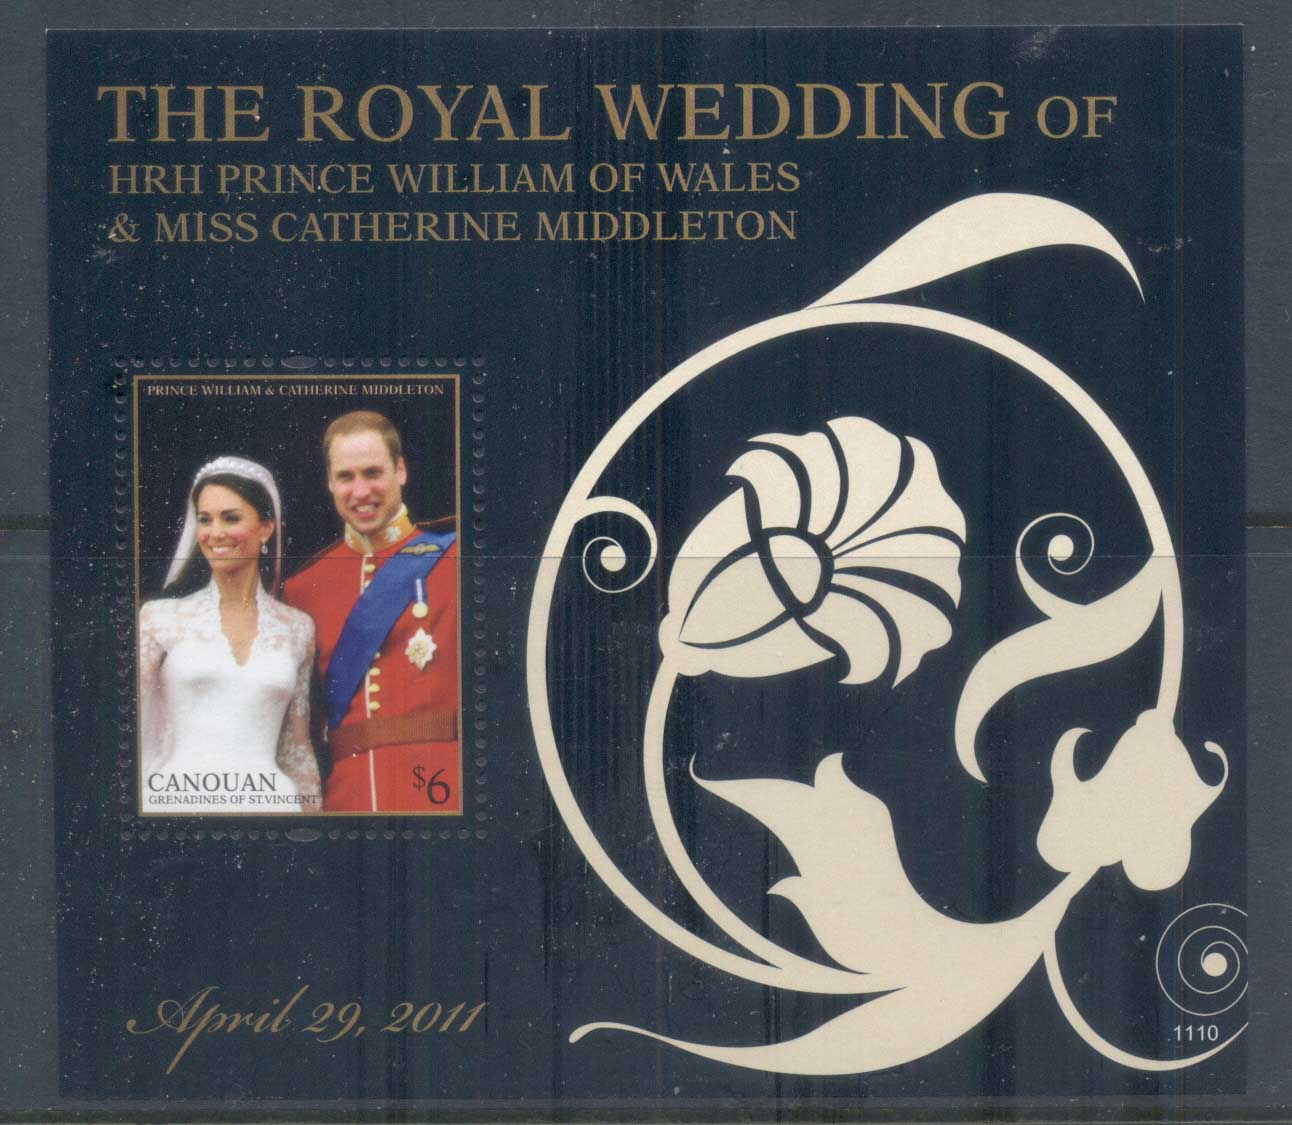 St Vincent Canouan 2011 Royal Wedding William & Kate #1110 $6 MS MUH